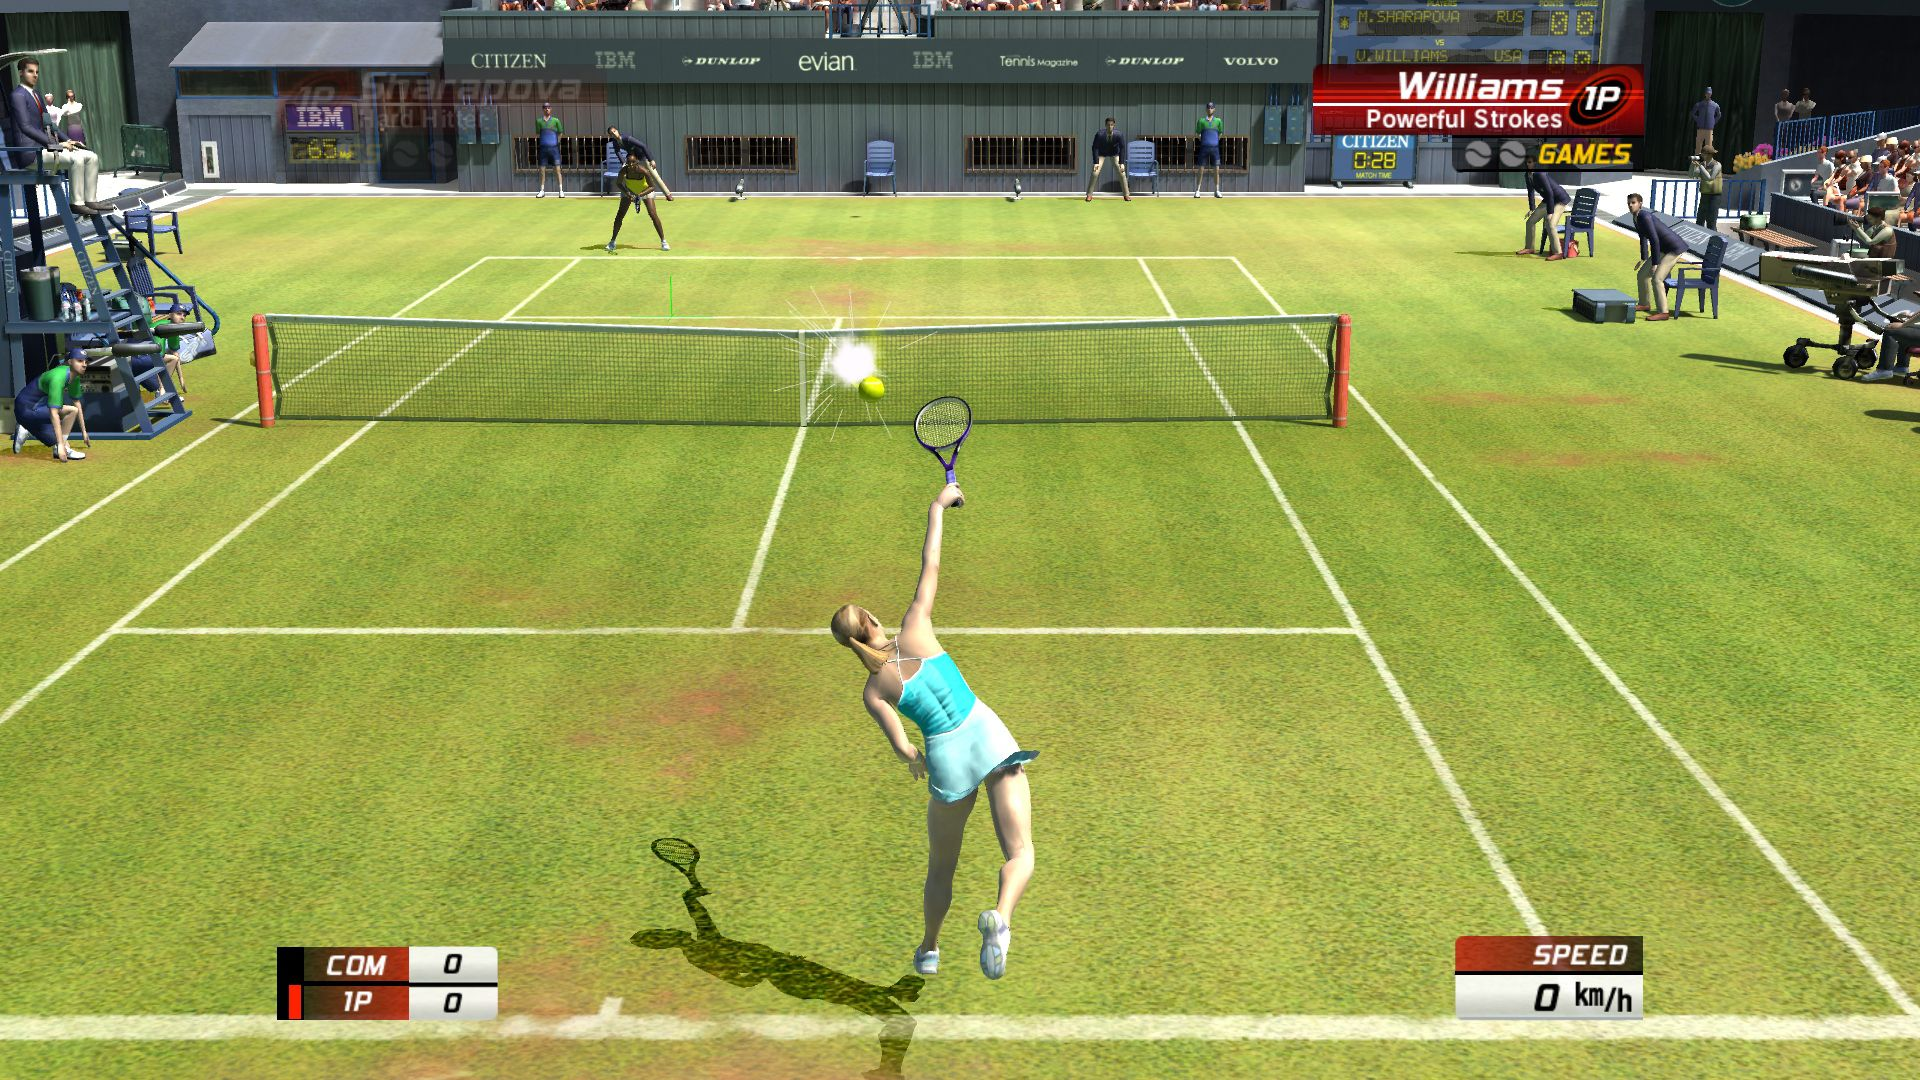 Gioco tennis on line